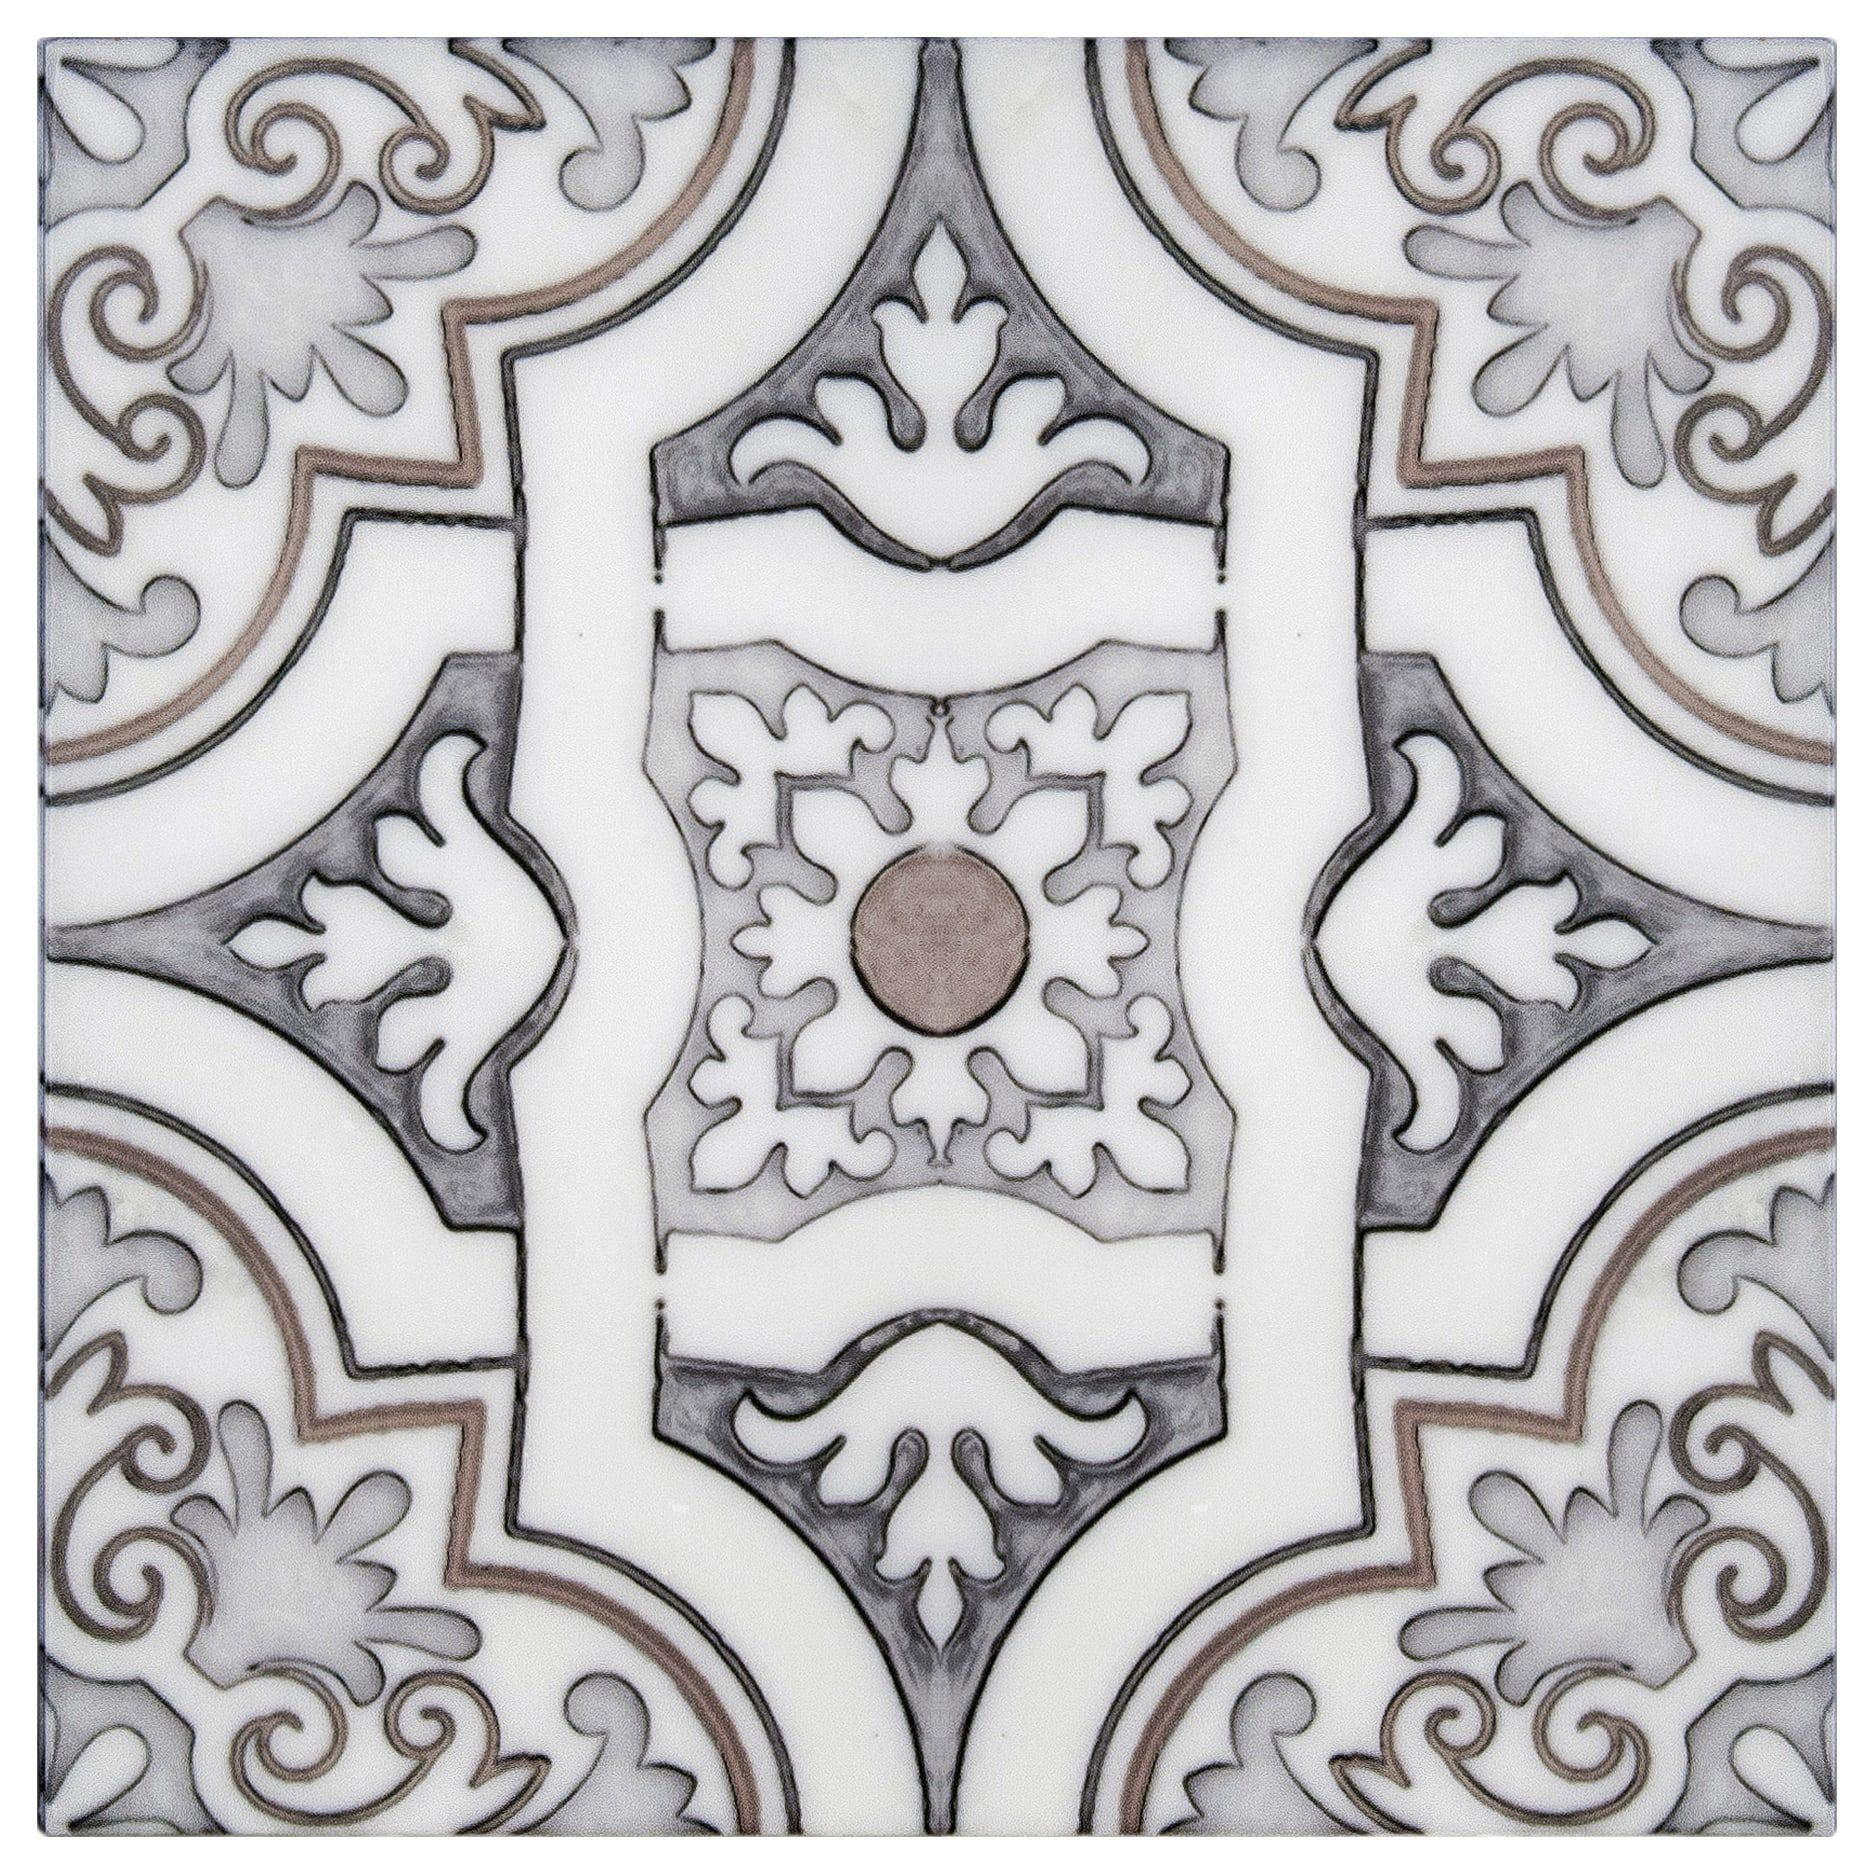 Unique Art Deco Tiles Hand Crafted On 6x6 12x12 Carrara Marble For Bathroom Flooring Kitchen Backsplash Fi Artisan Stone Tile Artisan Tiles Art Deco Tiles